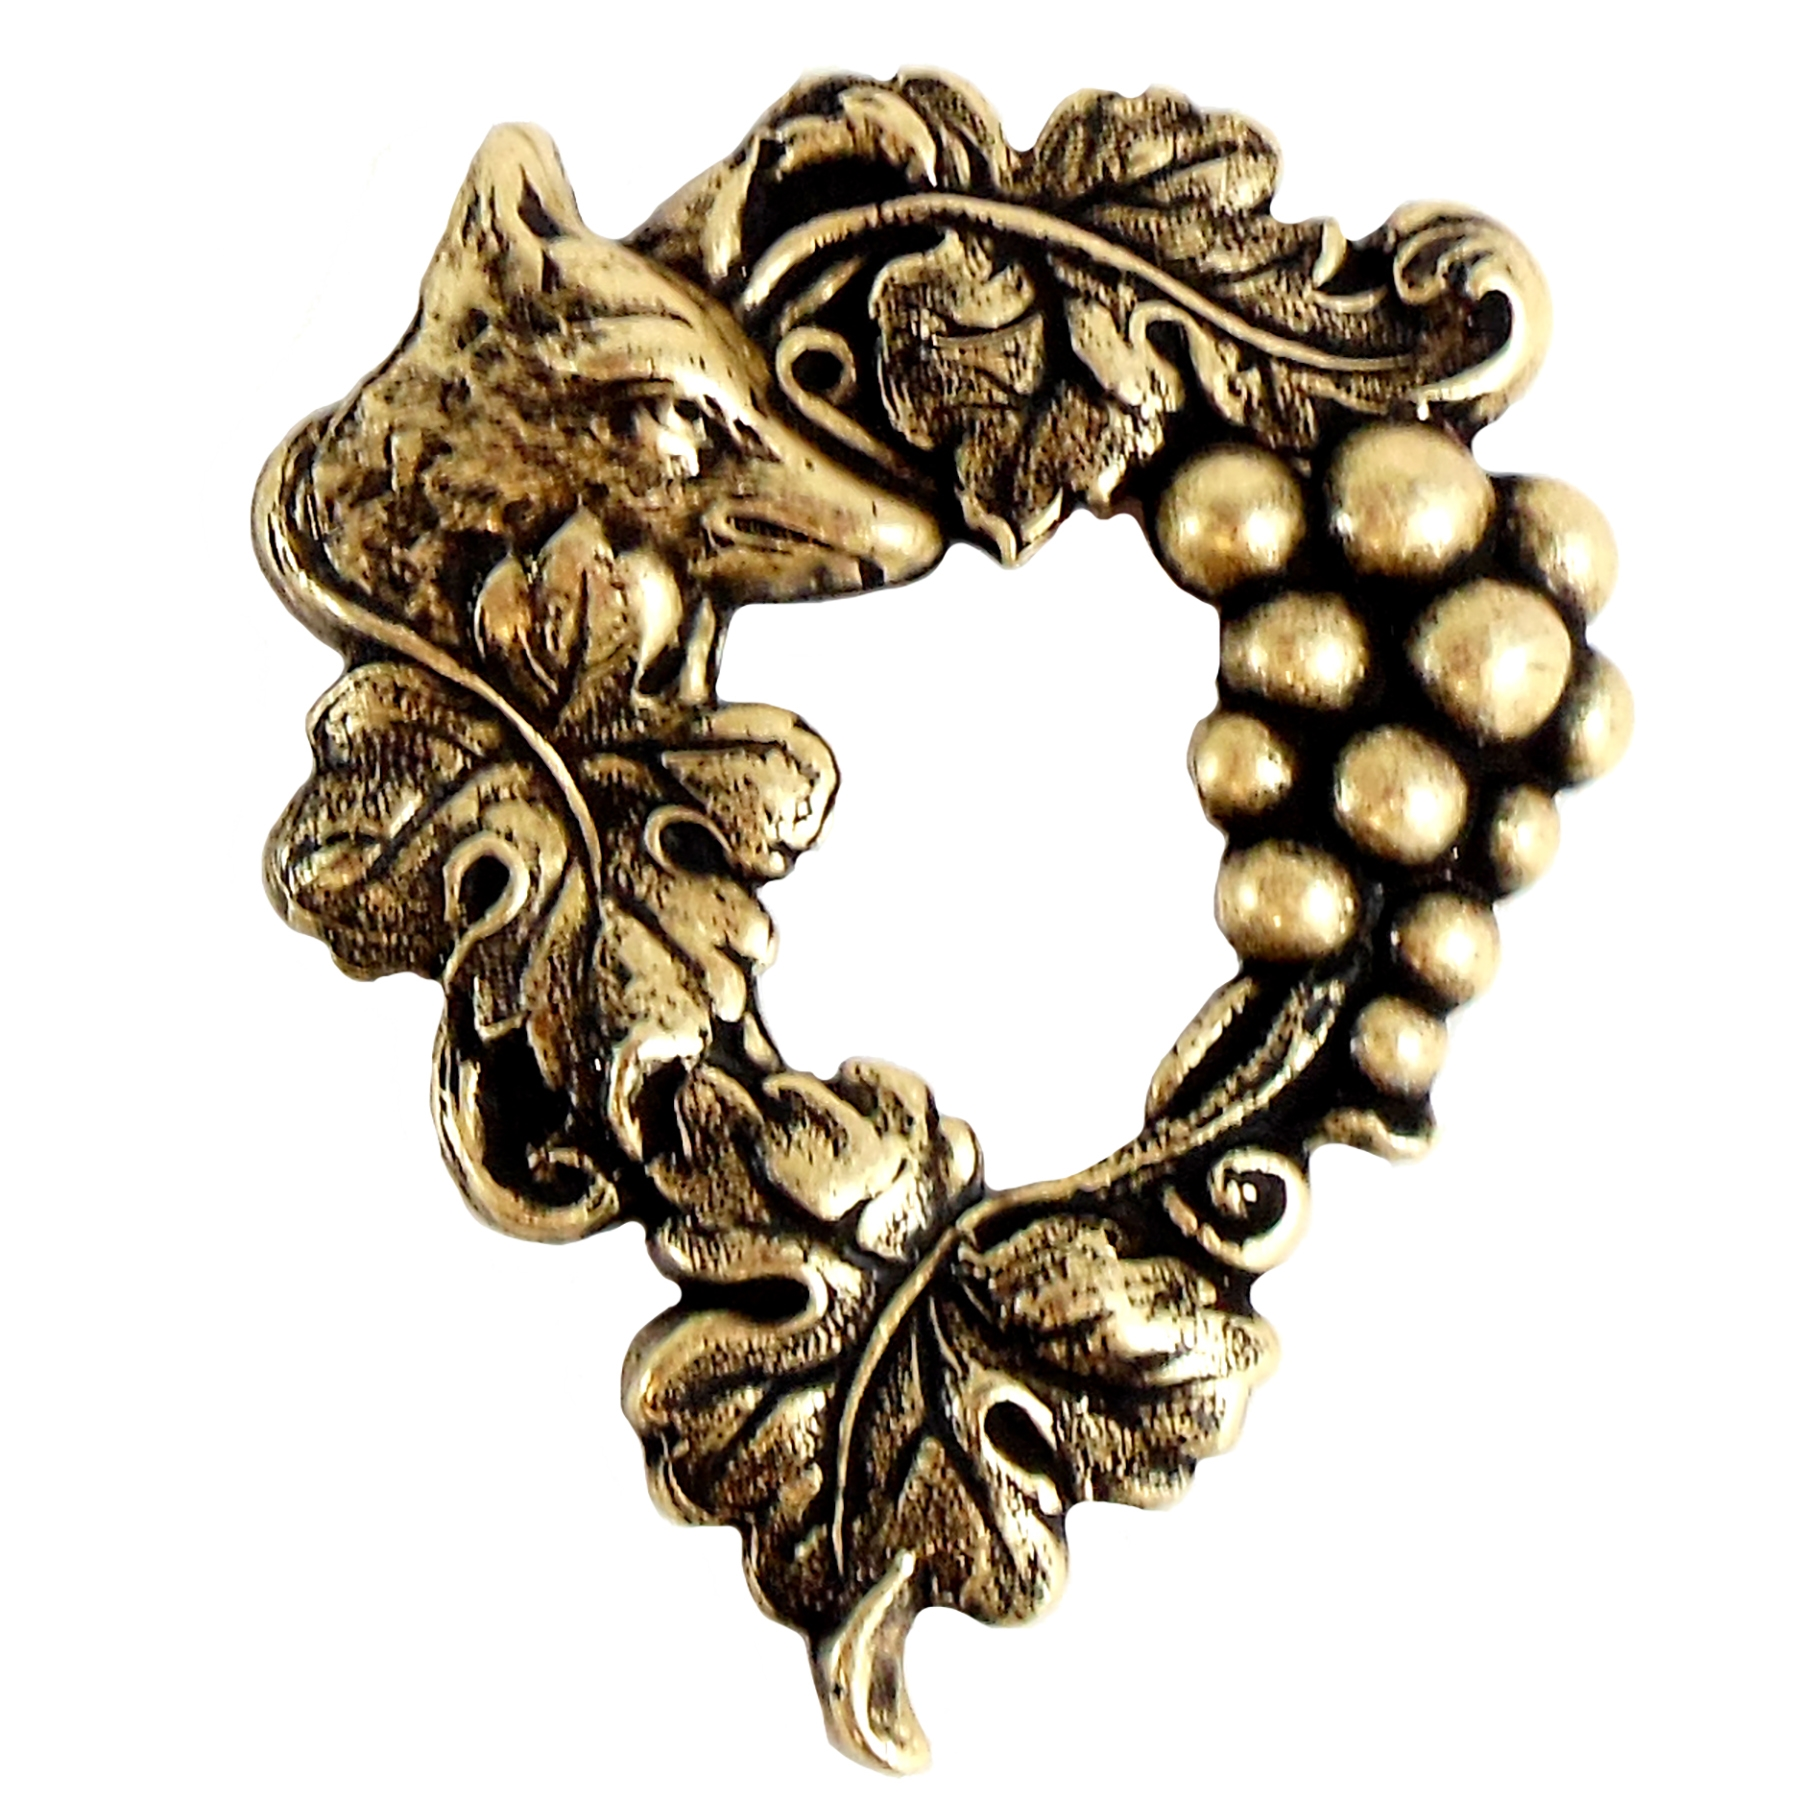 fox stampings, grapevine stampings, wreath, 06801, B'sue Boutiques, nickel-free, jewelry supplies, brass jewelry supplies, vintage jewelry supplies, jewelry findings, grapes, grapevine wreath, brass ox, antique brass